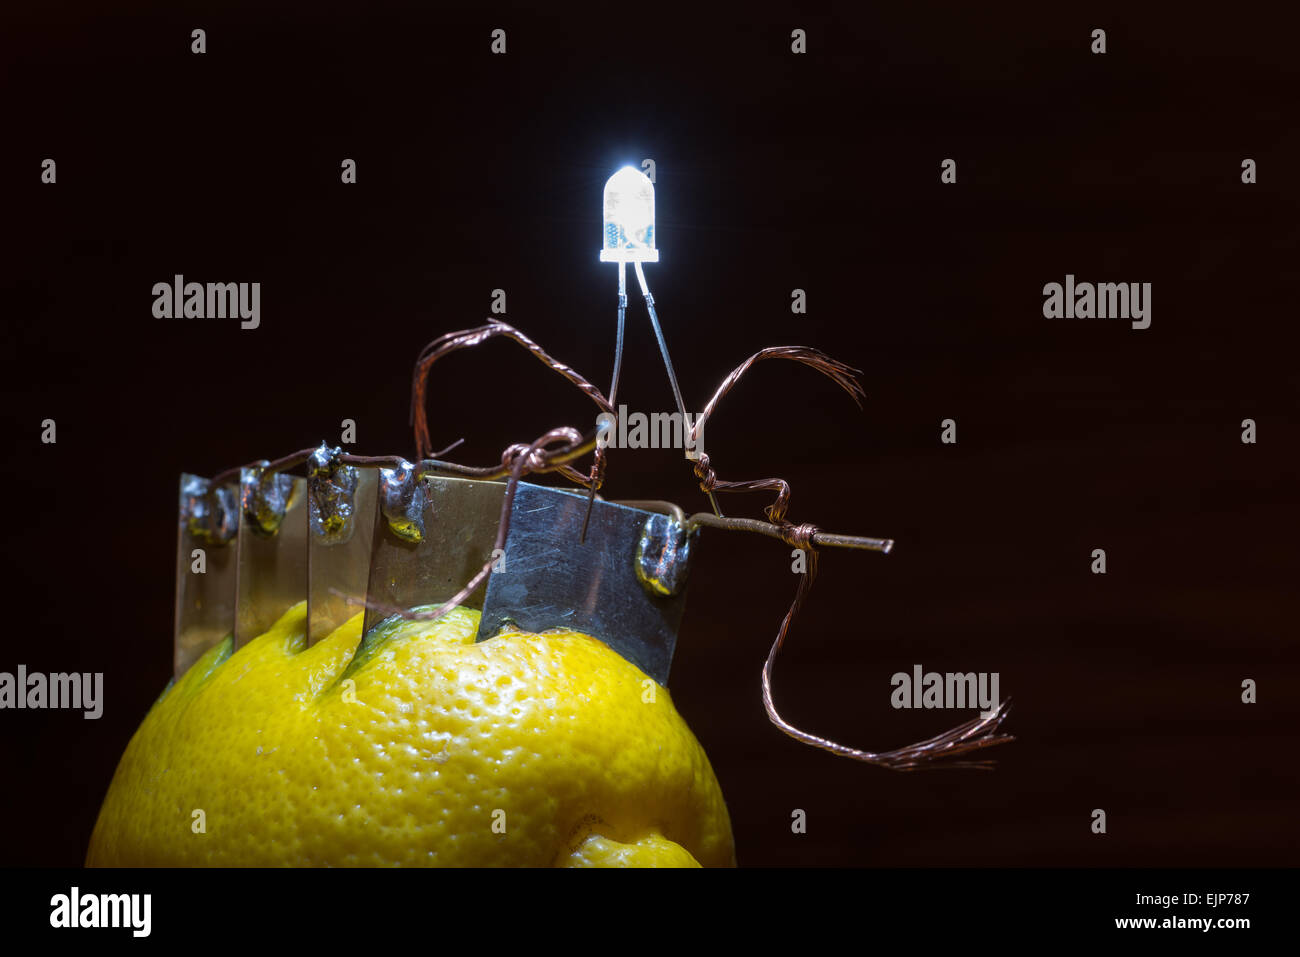 Energy Free Bulb Circuit Question About Wiring Diagram Of Light Alternative Source Electrical Current Lemon Provides Stock Photo 80393943 Alamy Vhs R Pdf